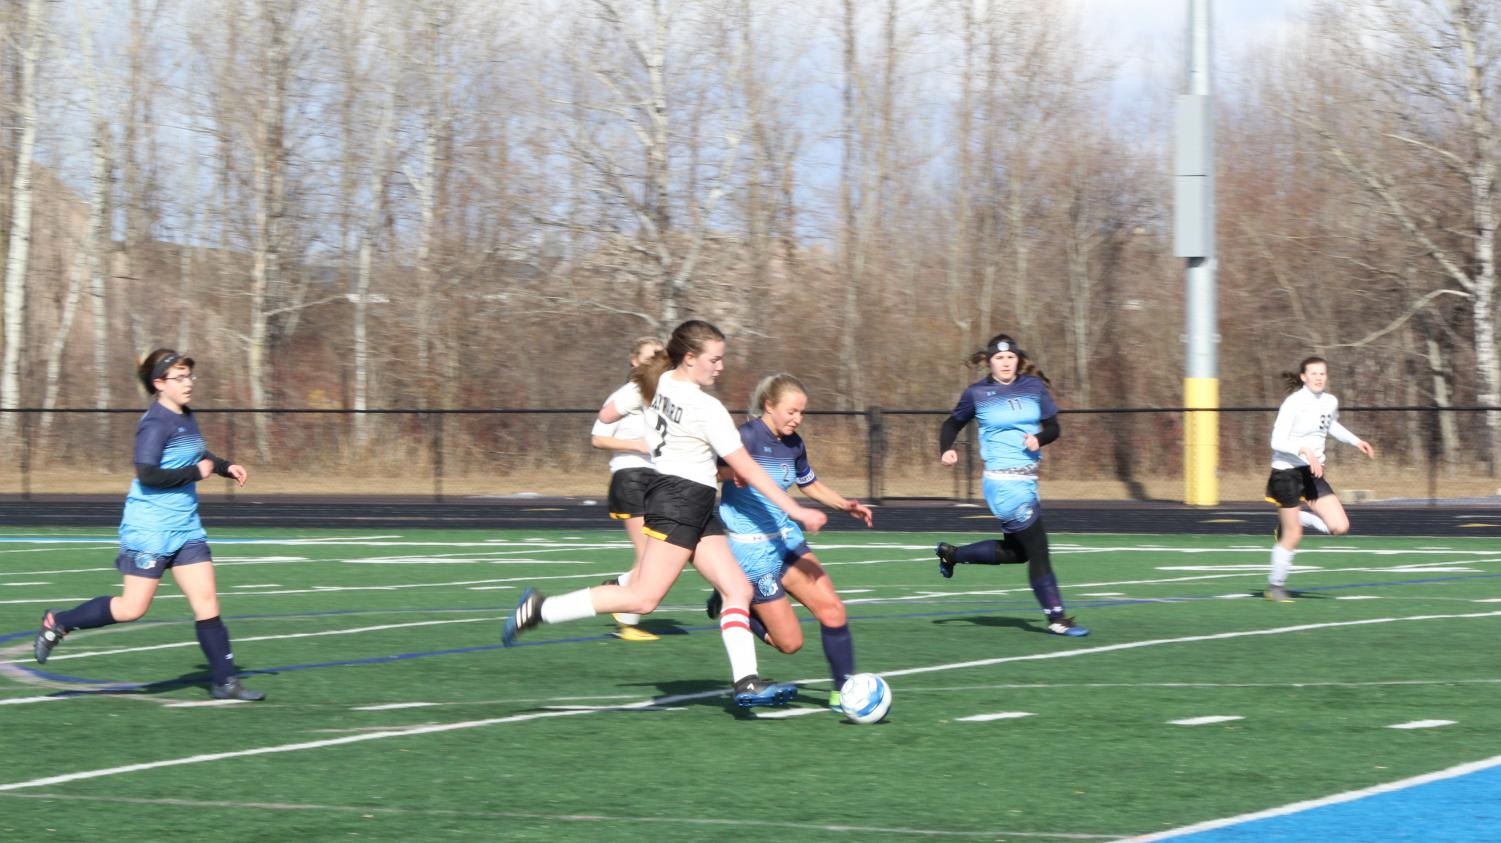 Senior Chloe Kintop (2) fights for the ball against Hayward at the NBC Spartan Sports Complex April 2, as sophomore Hannah Drake (left) and senior Megan Jaszczak (11) run beside her. The game ended in a 2-2 draw.